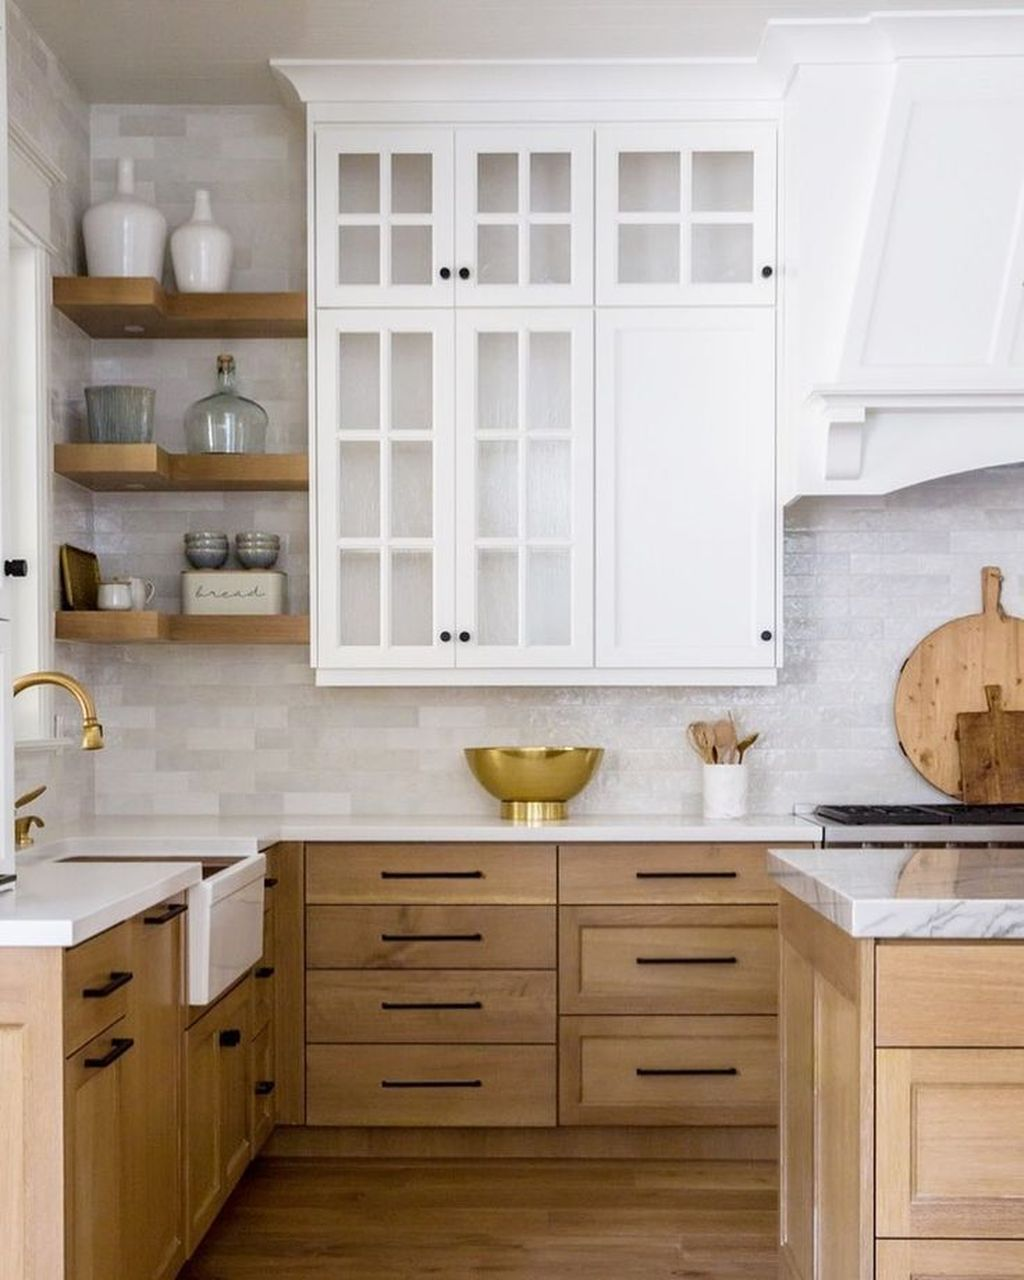 Popular Wooden Cabinets Design Ideas For Your Kitchen Decor 08